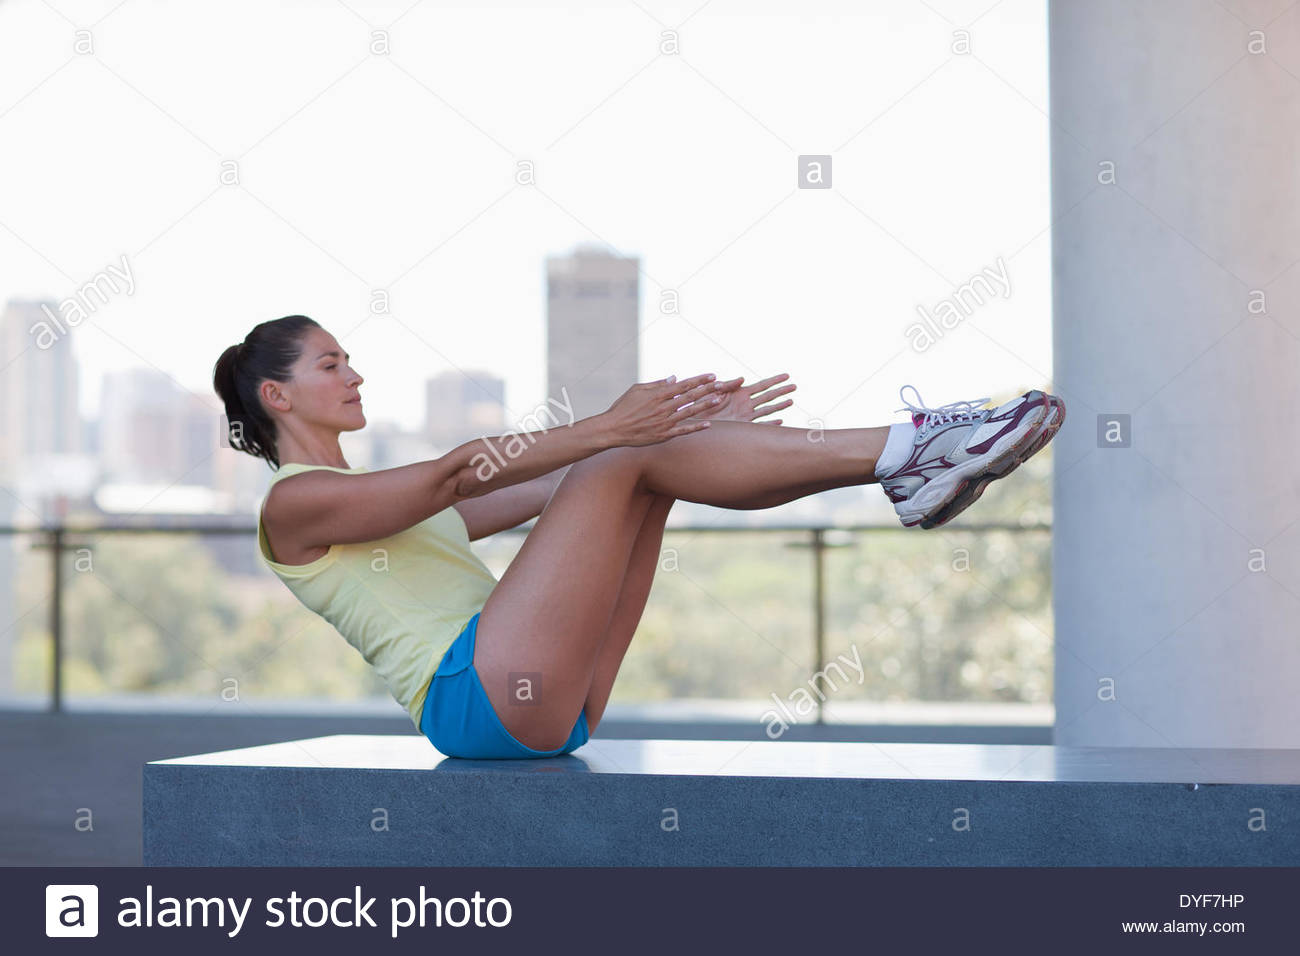 Woman stretching before exercise - Stock Image